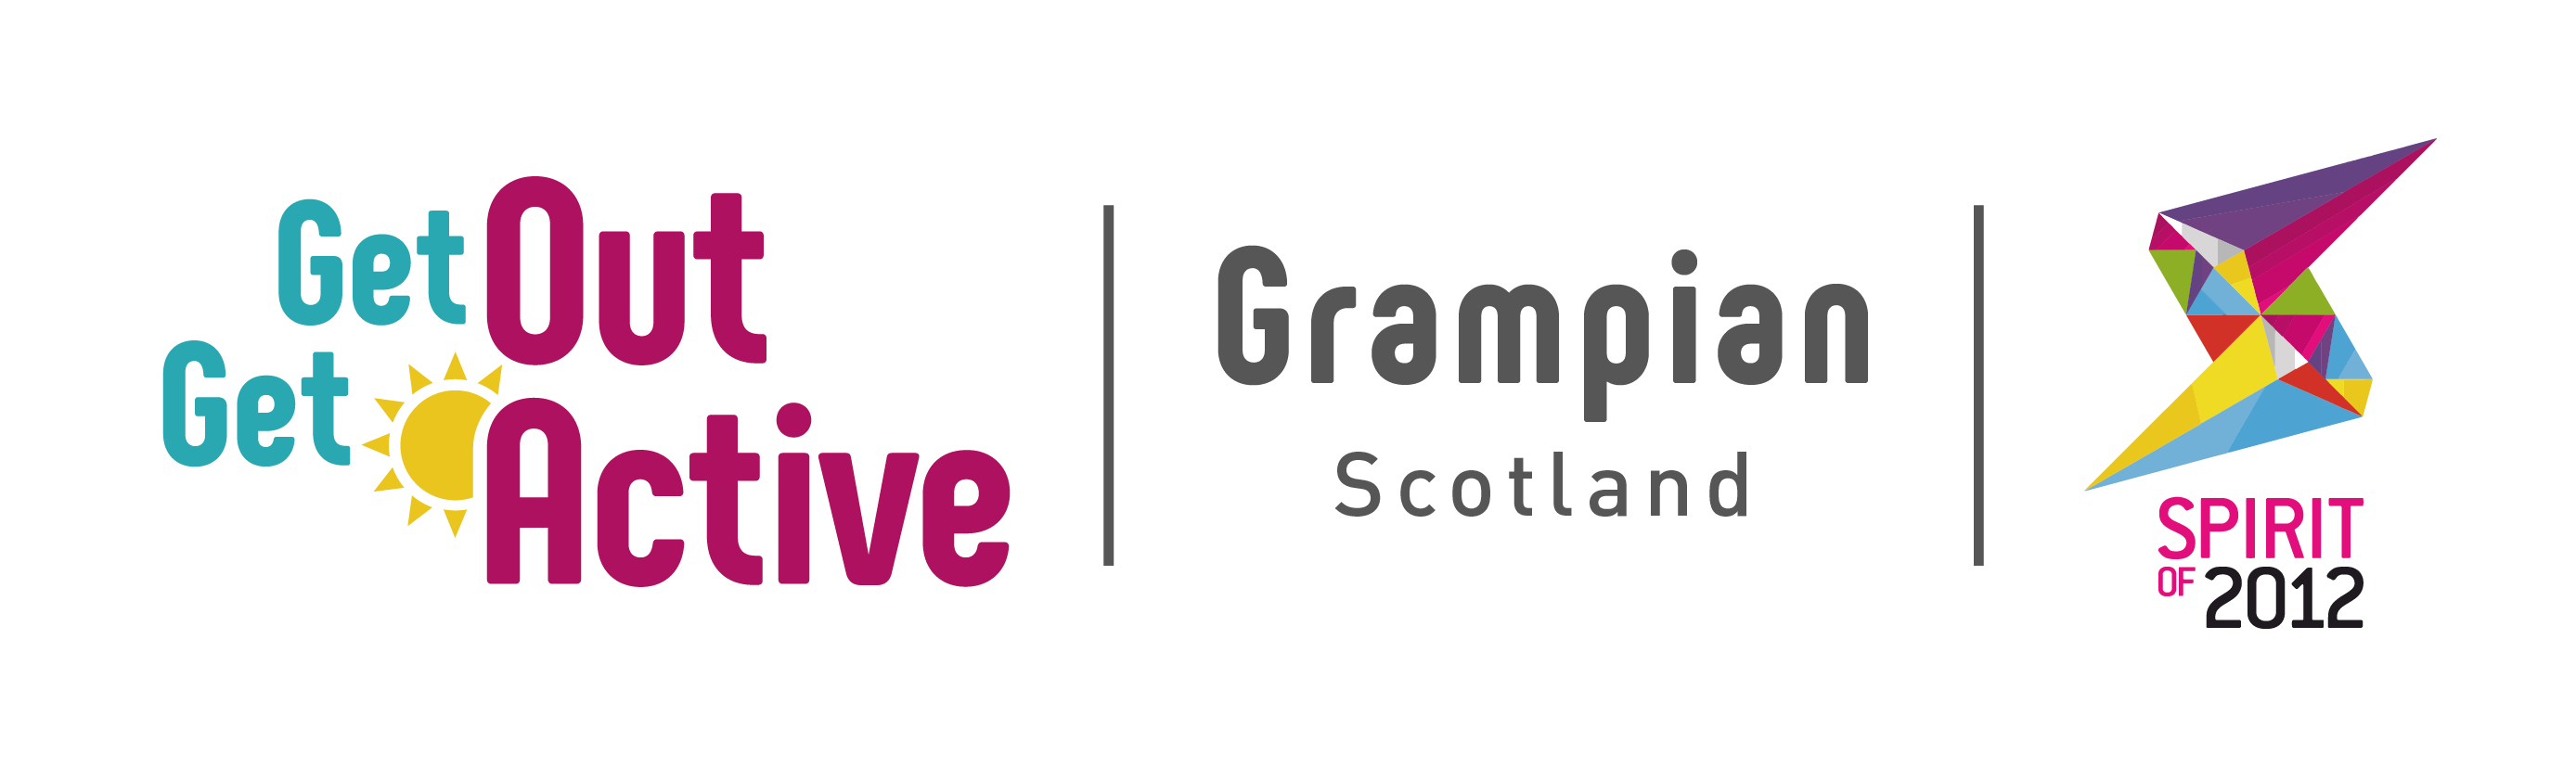 Get Out and Get Active Grampian Scotland